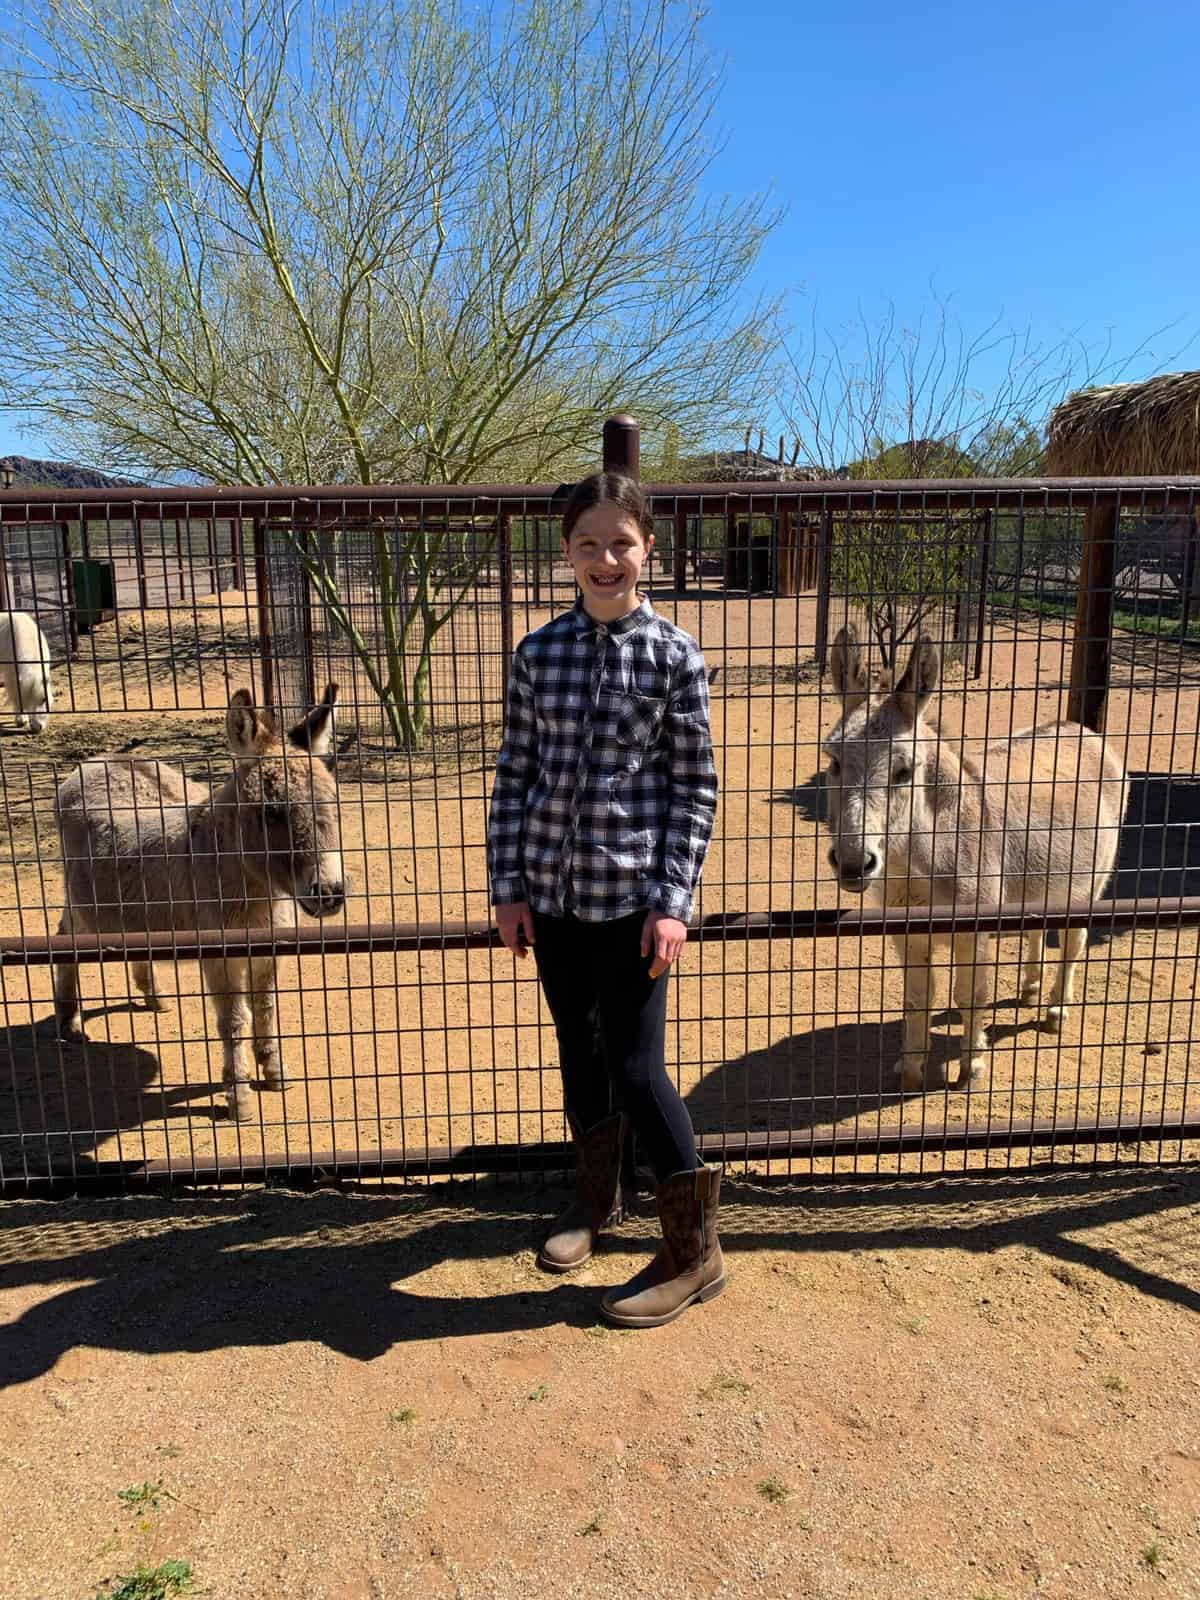 White Stallion Ranch, the Best All-Inclusive Resort in Arizona showing a young girl standing by the petting zoo gate.